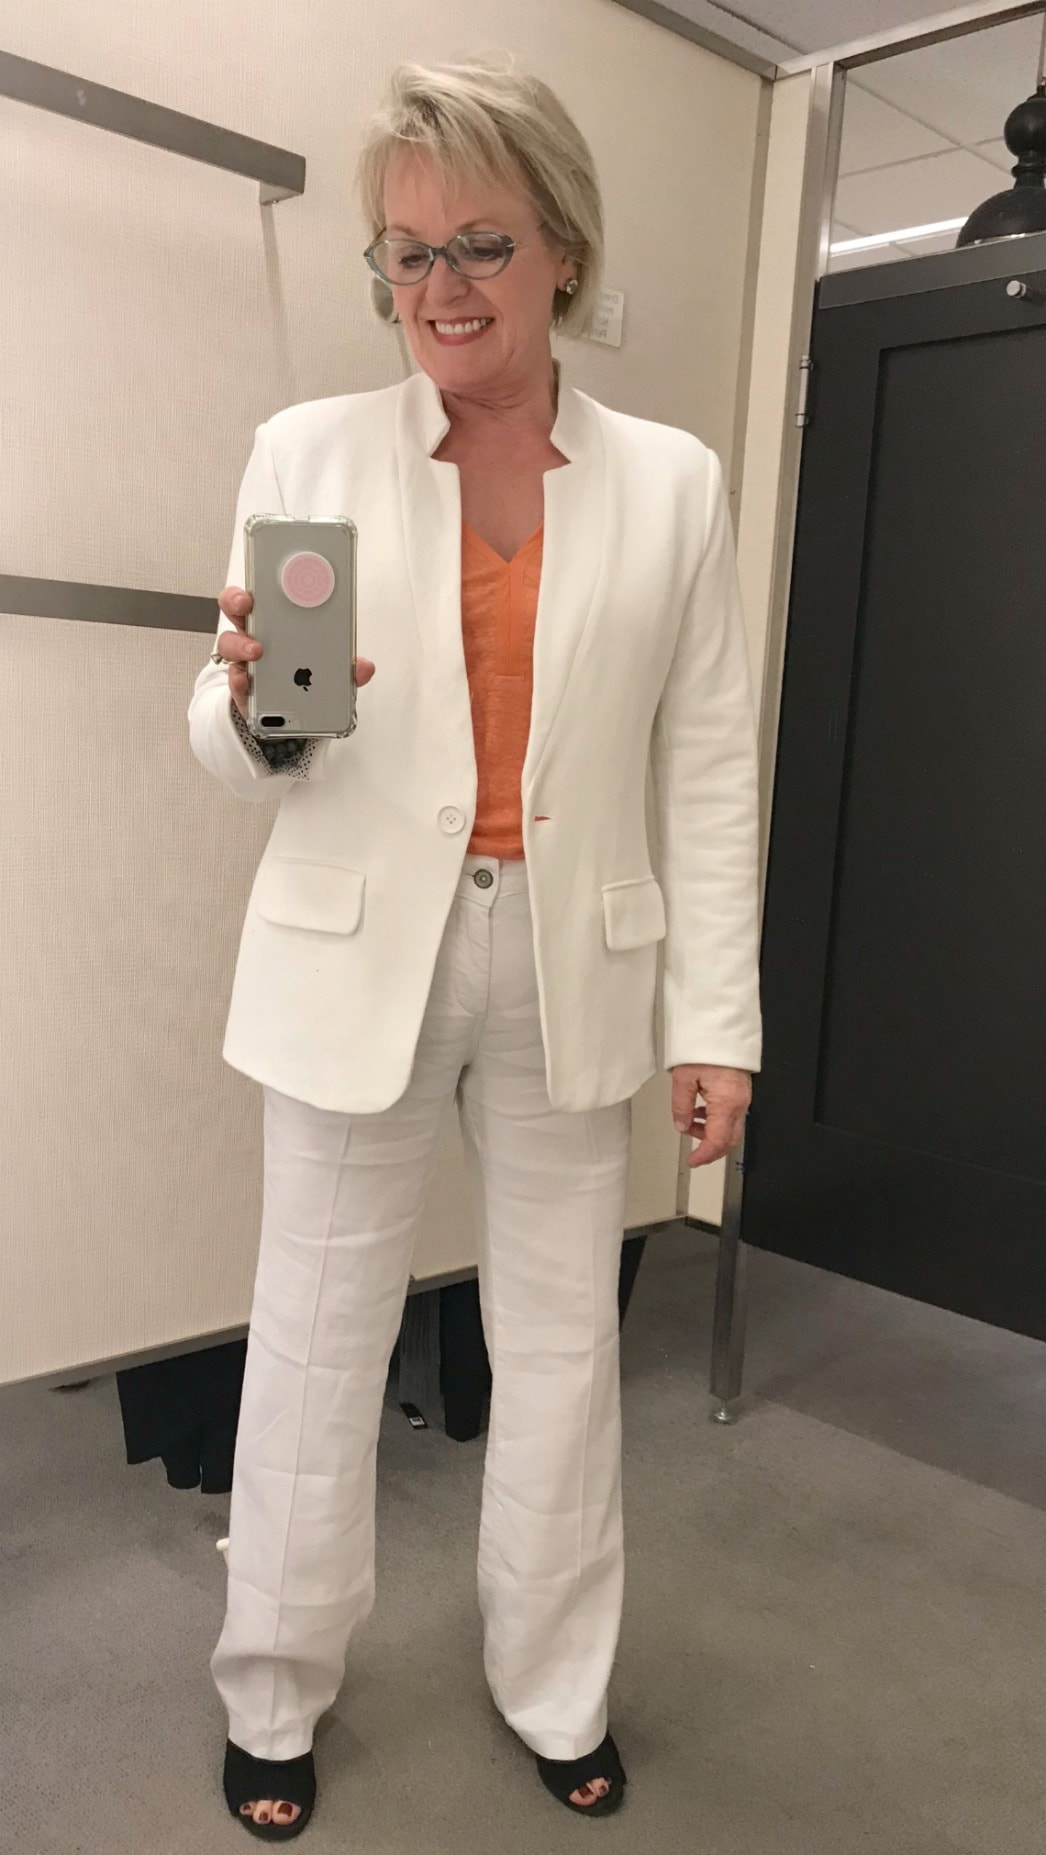 NYDJ linen pants and Gibsons white jacket from Nordstrom on A Well Styled Life